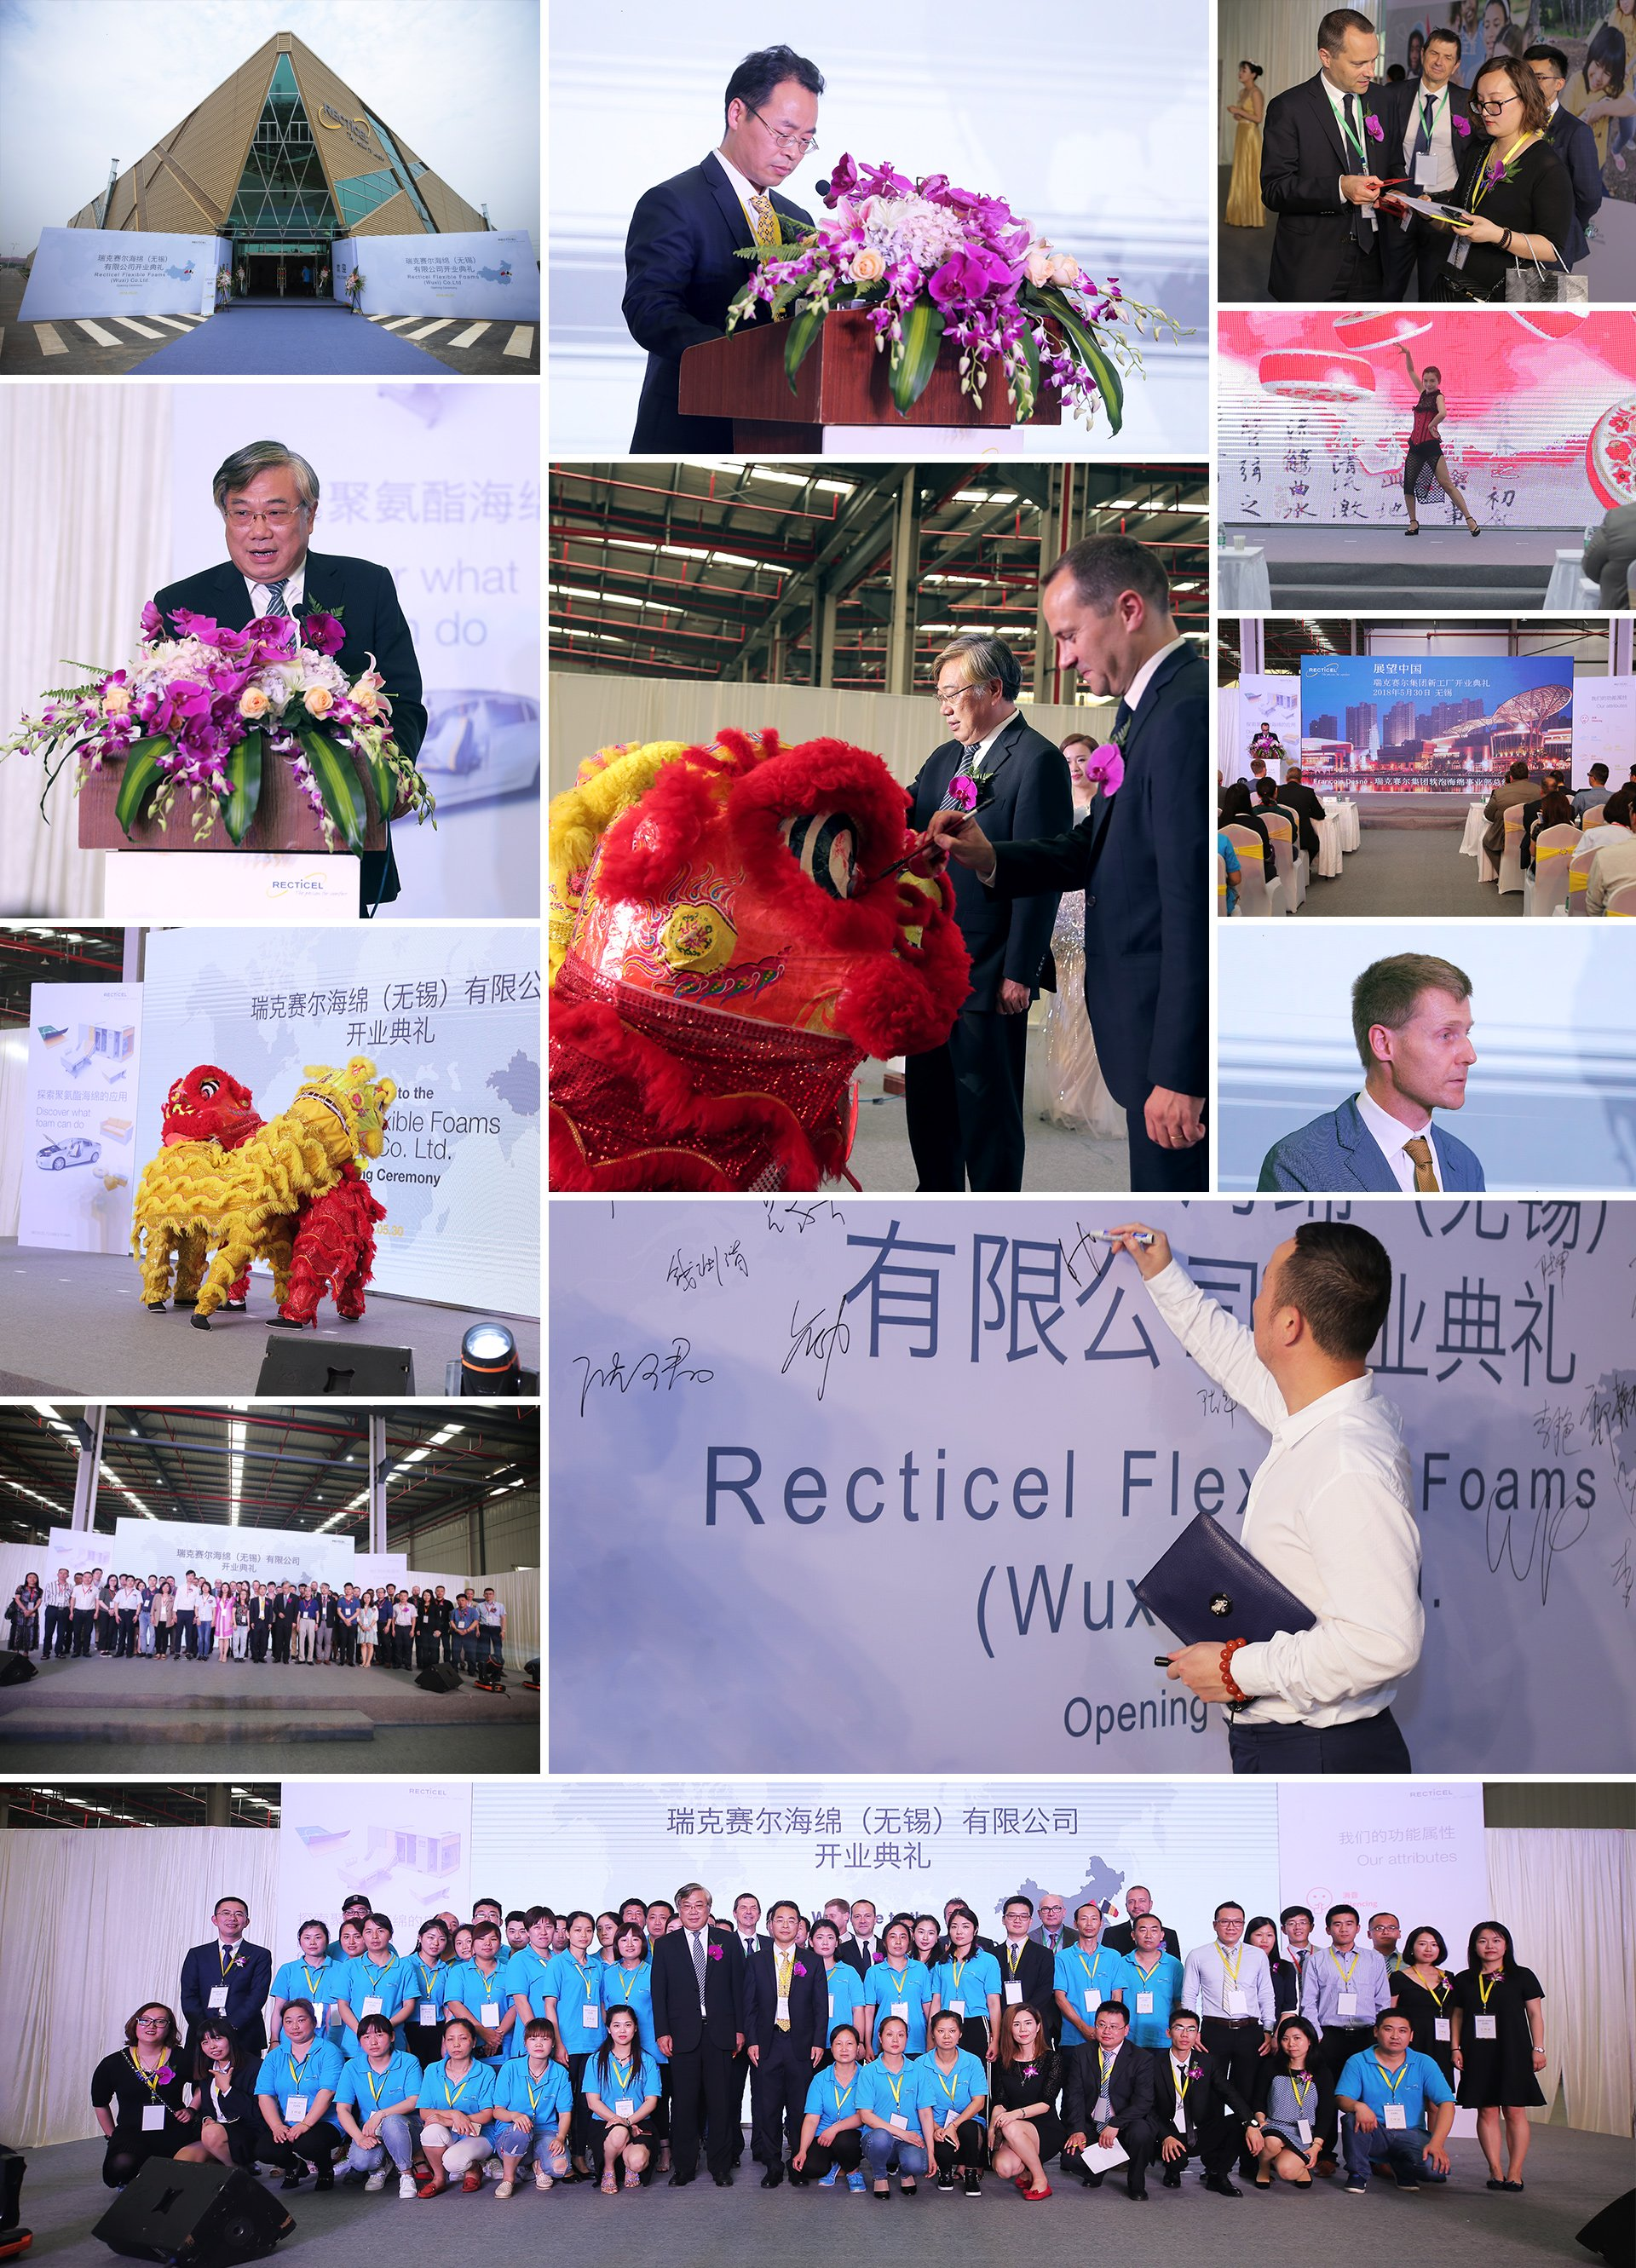 WUXI_collage_2.jpg